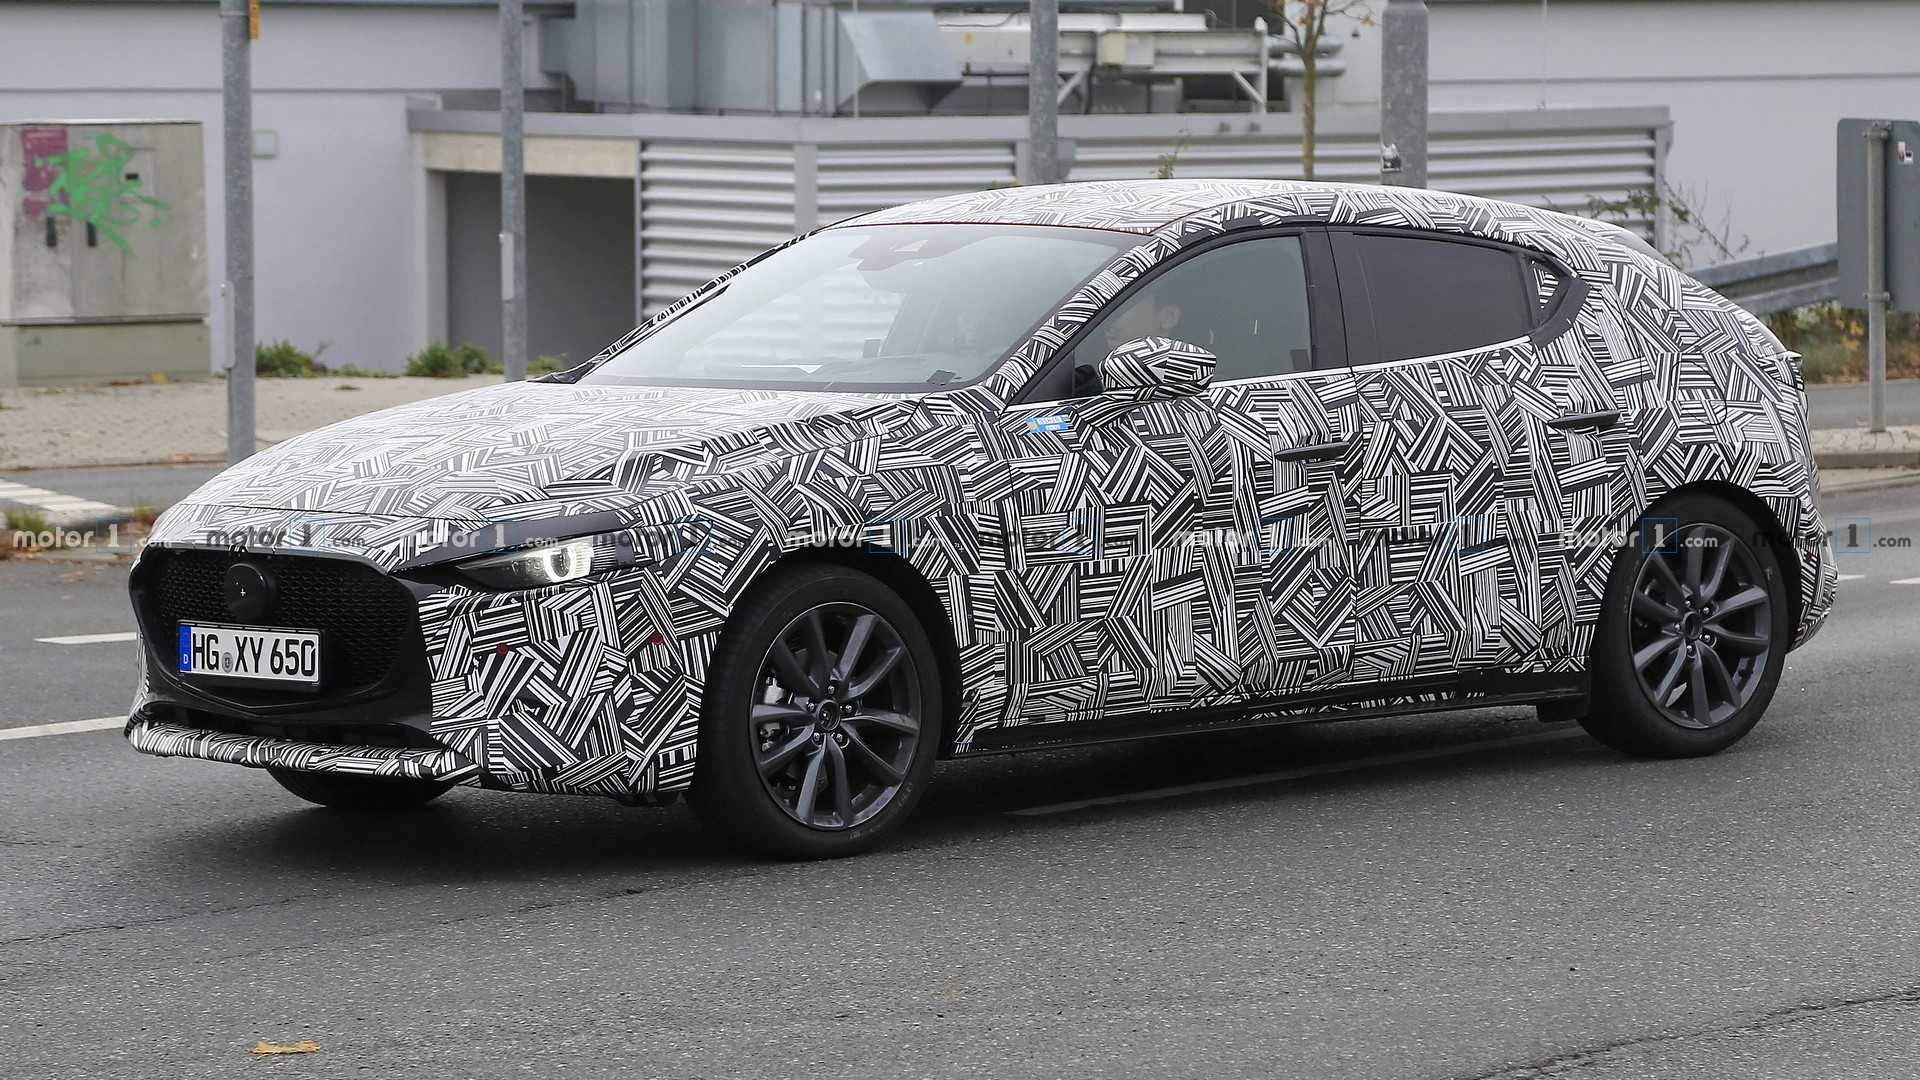 62 The 2020 Mazda 3 Spy Shots Research New for 2020 Mazda 3 Spy Shots